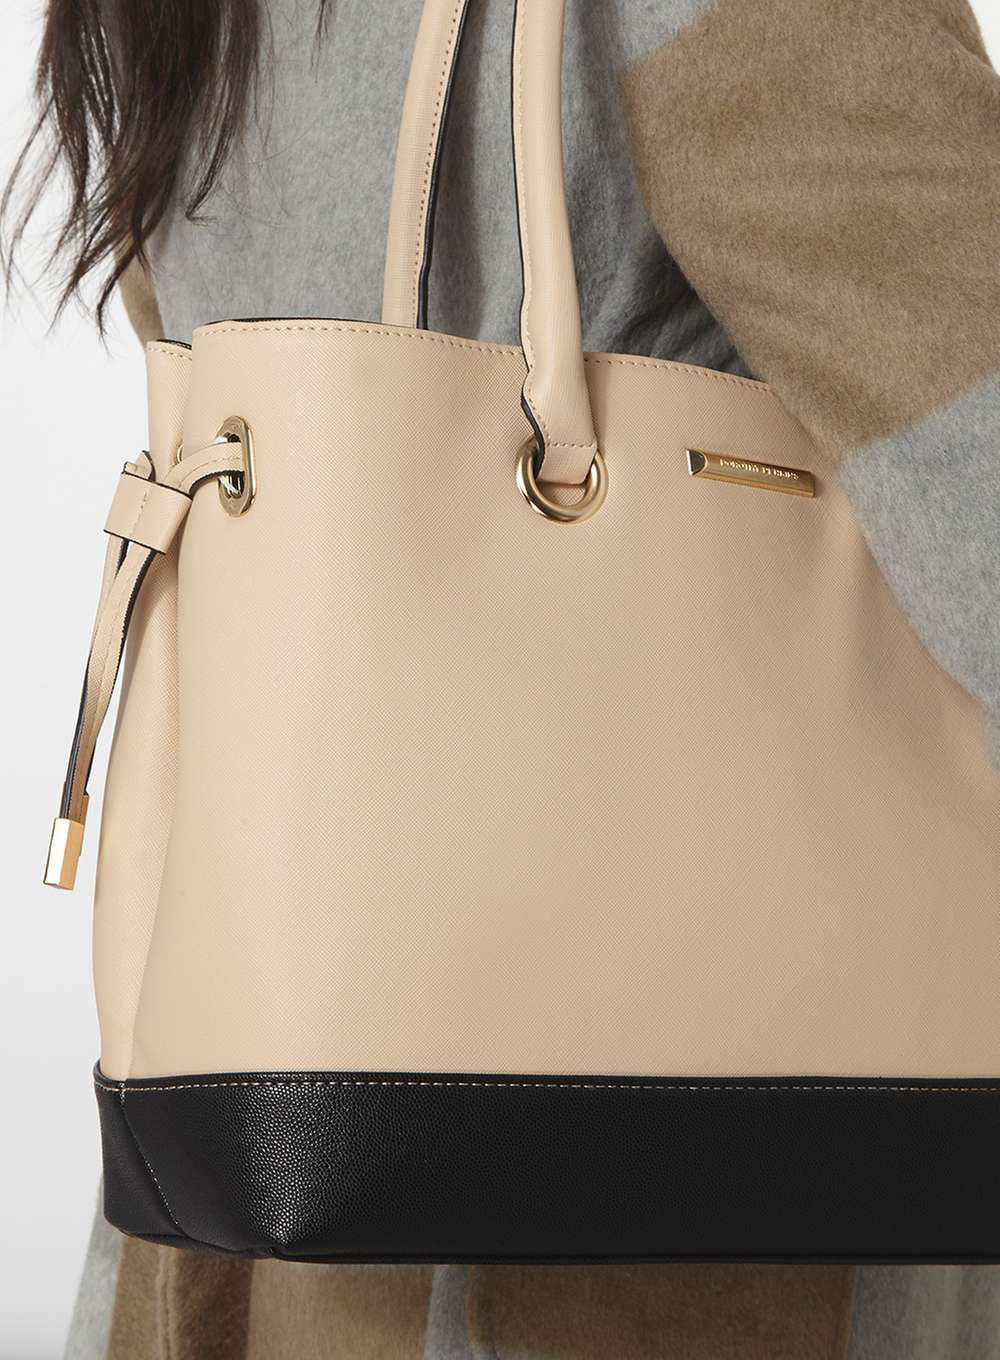 Lyst - Dorothy Perkins Neutral Tie Side Tote Bag in White